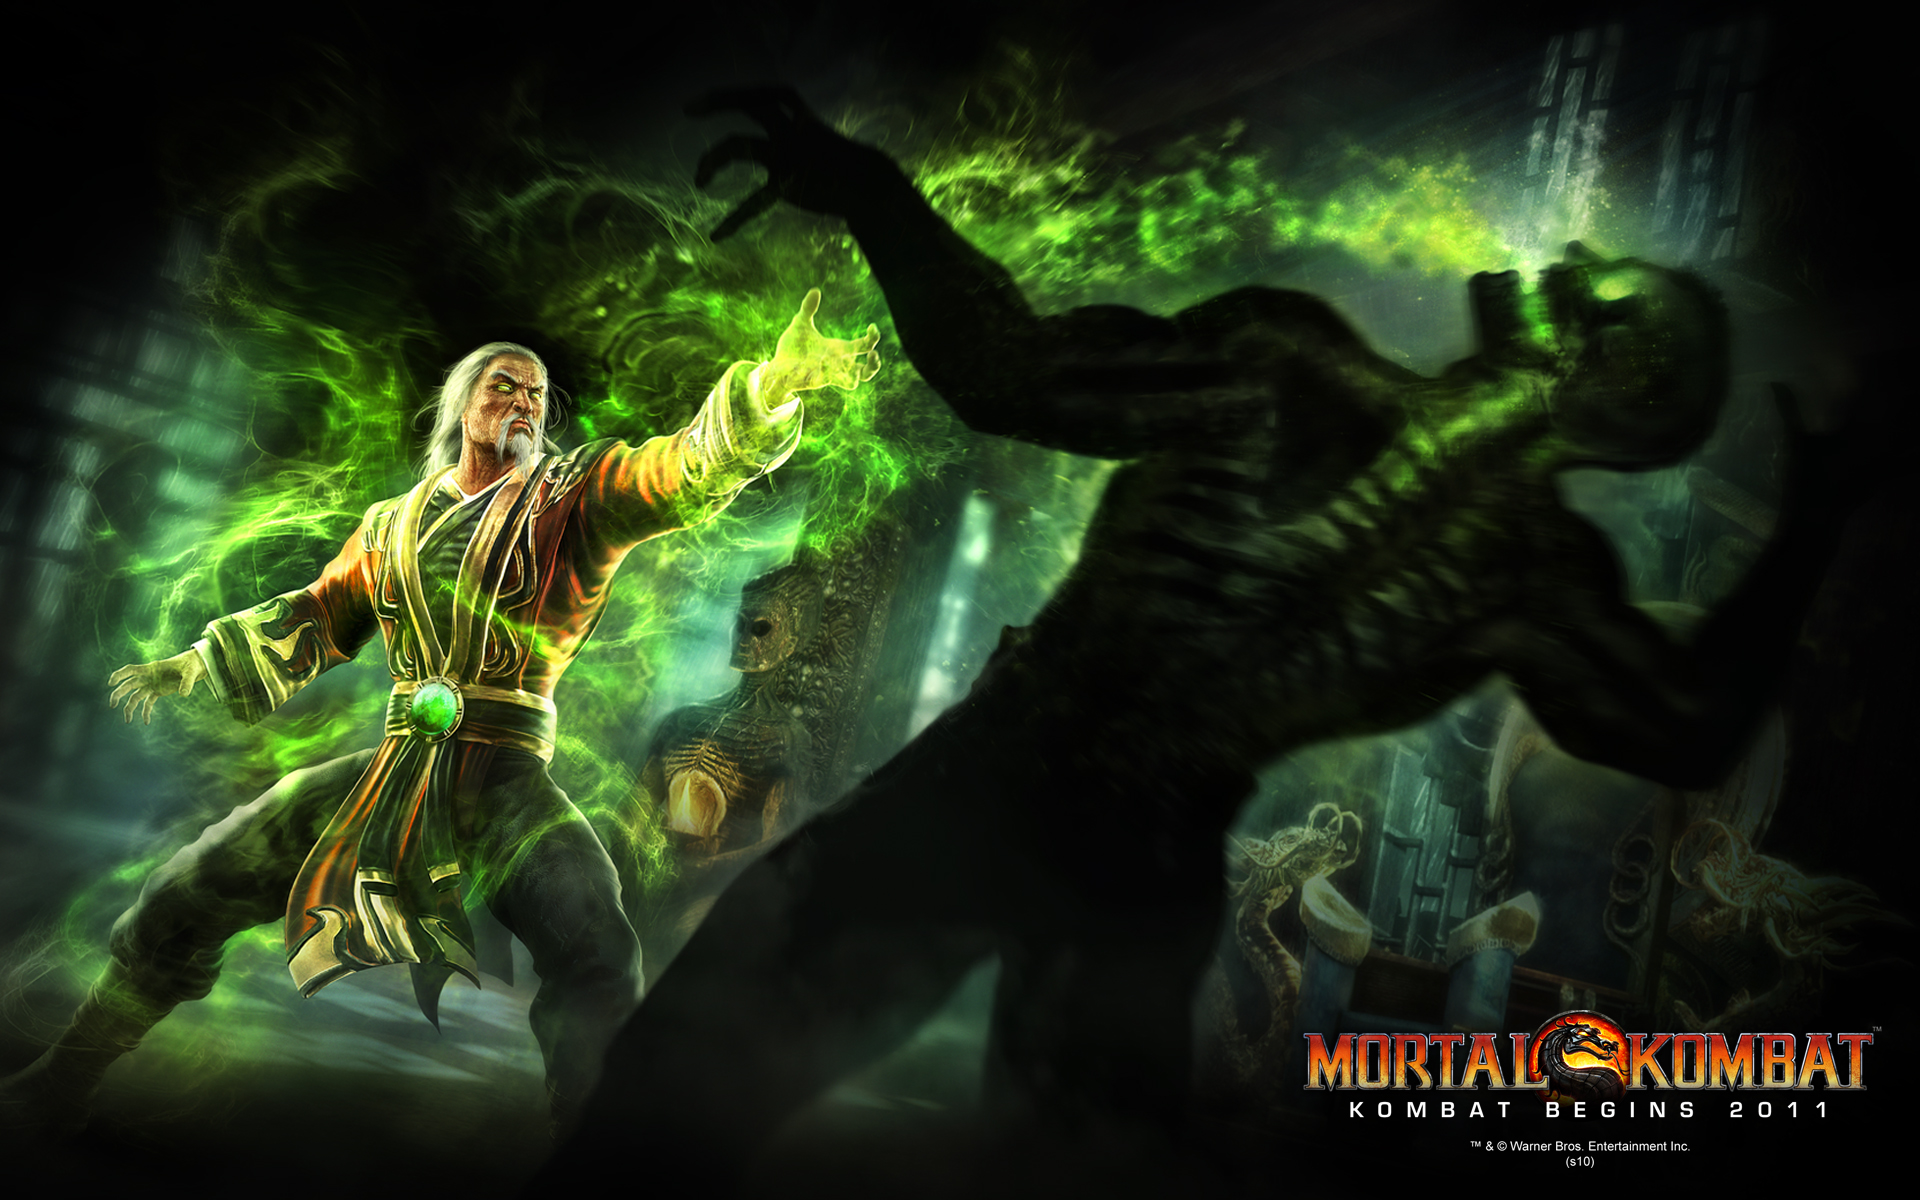 FDMK - Mortal Monday: Another Shang Tsung Wallpaper Released